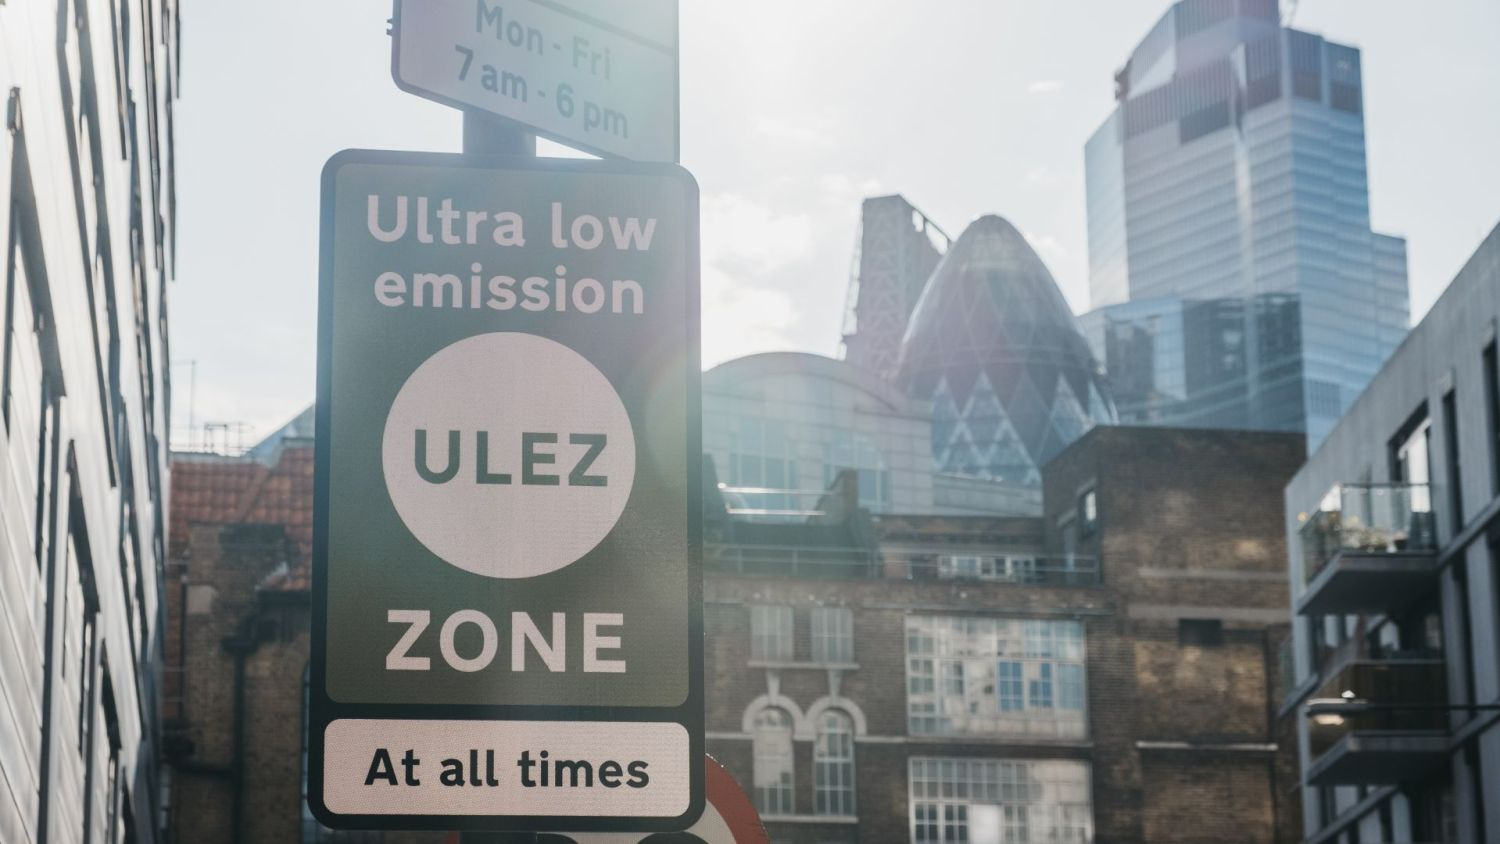 30 low emission zones proposed by leaders